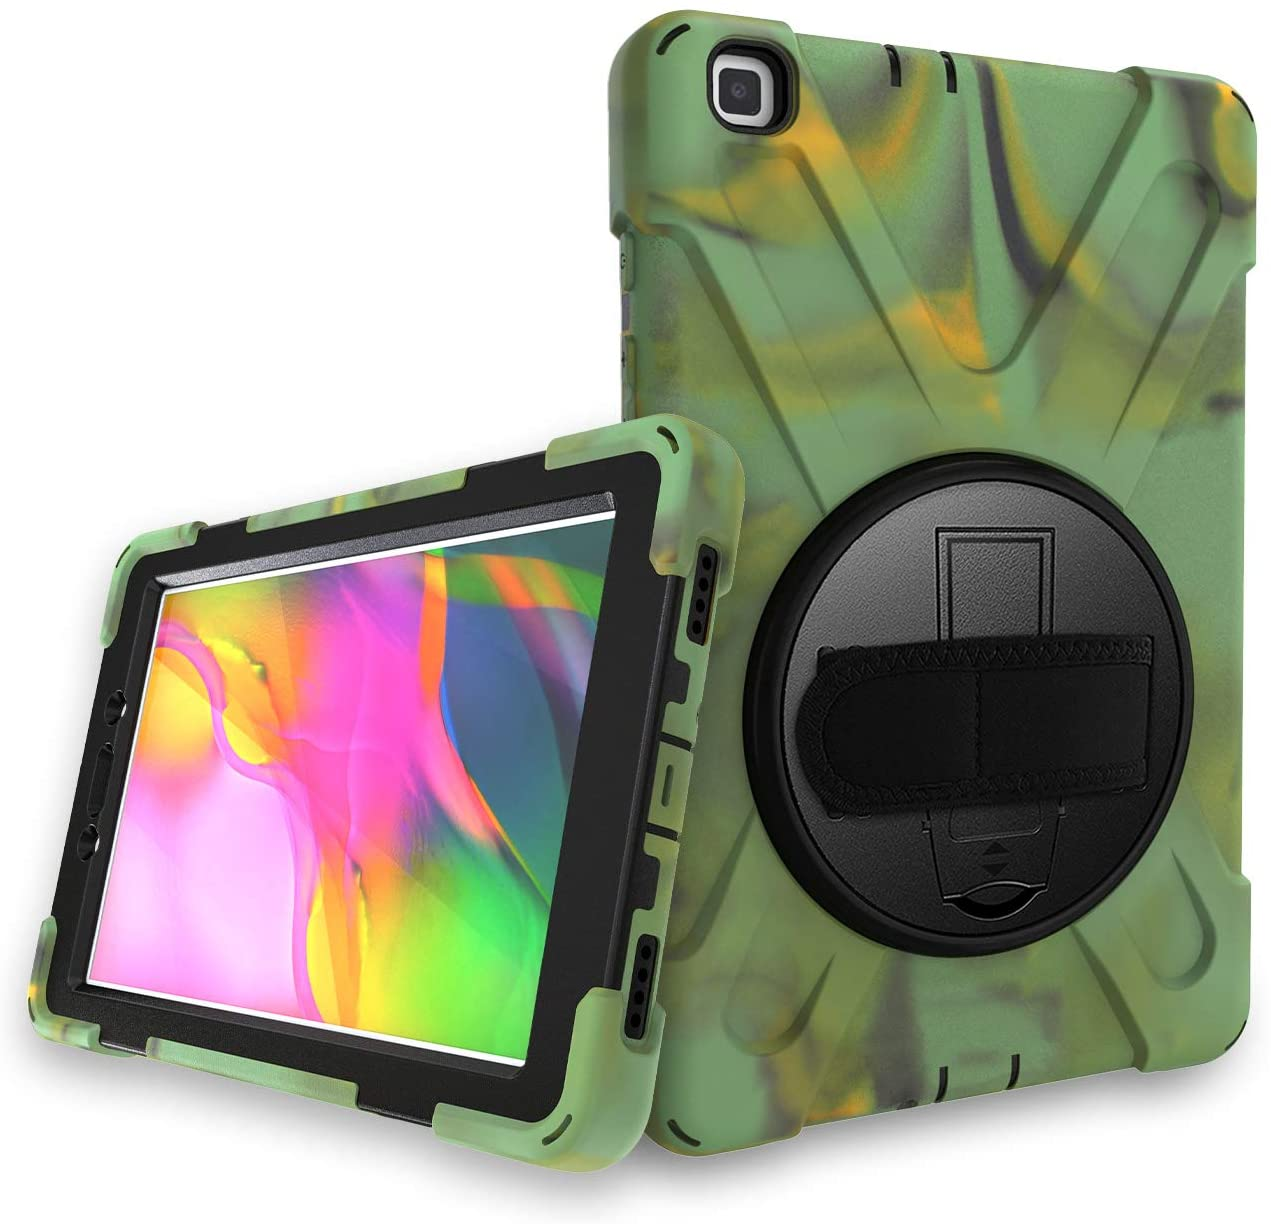 Case for Samsung Galaxy Tab A 2019 8.0 Inch SM-T290/T295,Kickstand with 360 Degree Rotatable 3 Layer Hybrid Heavy Duty Shockproof Hand Strap and Shoulder Strap Design for T290 Tablet(Camouflage)